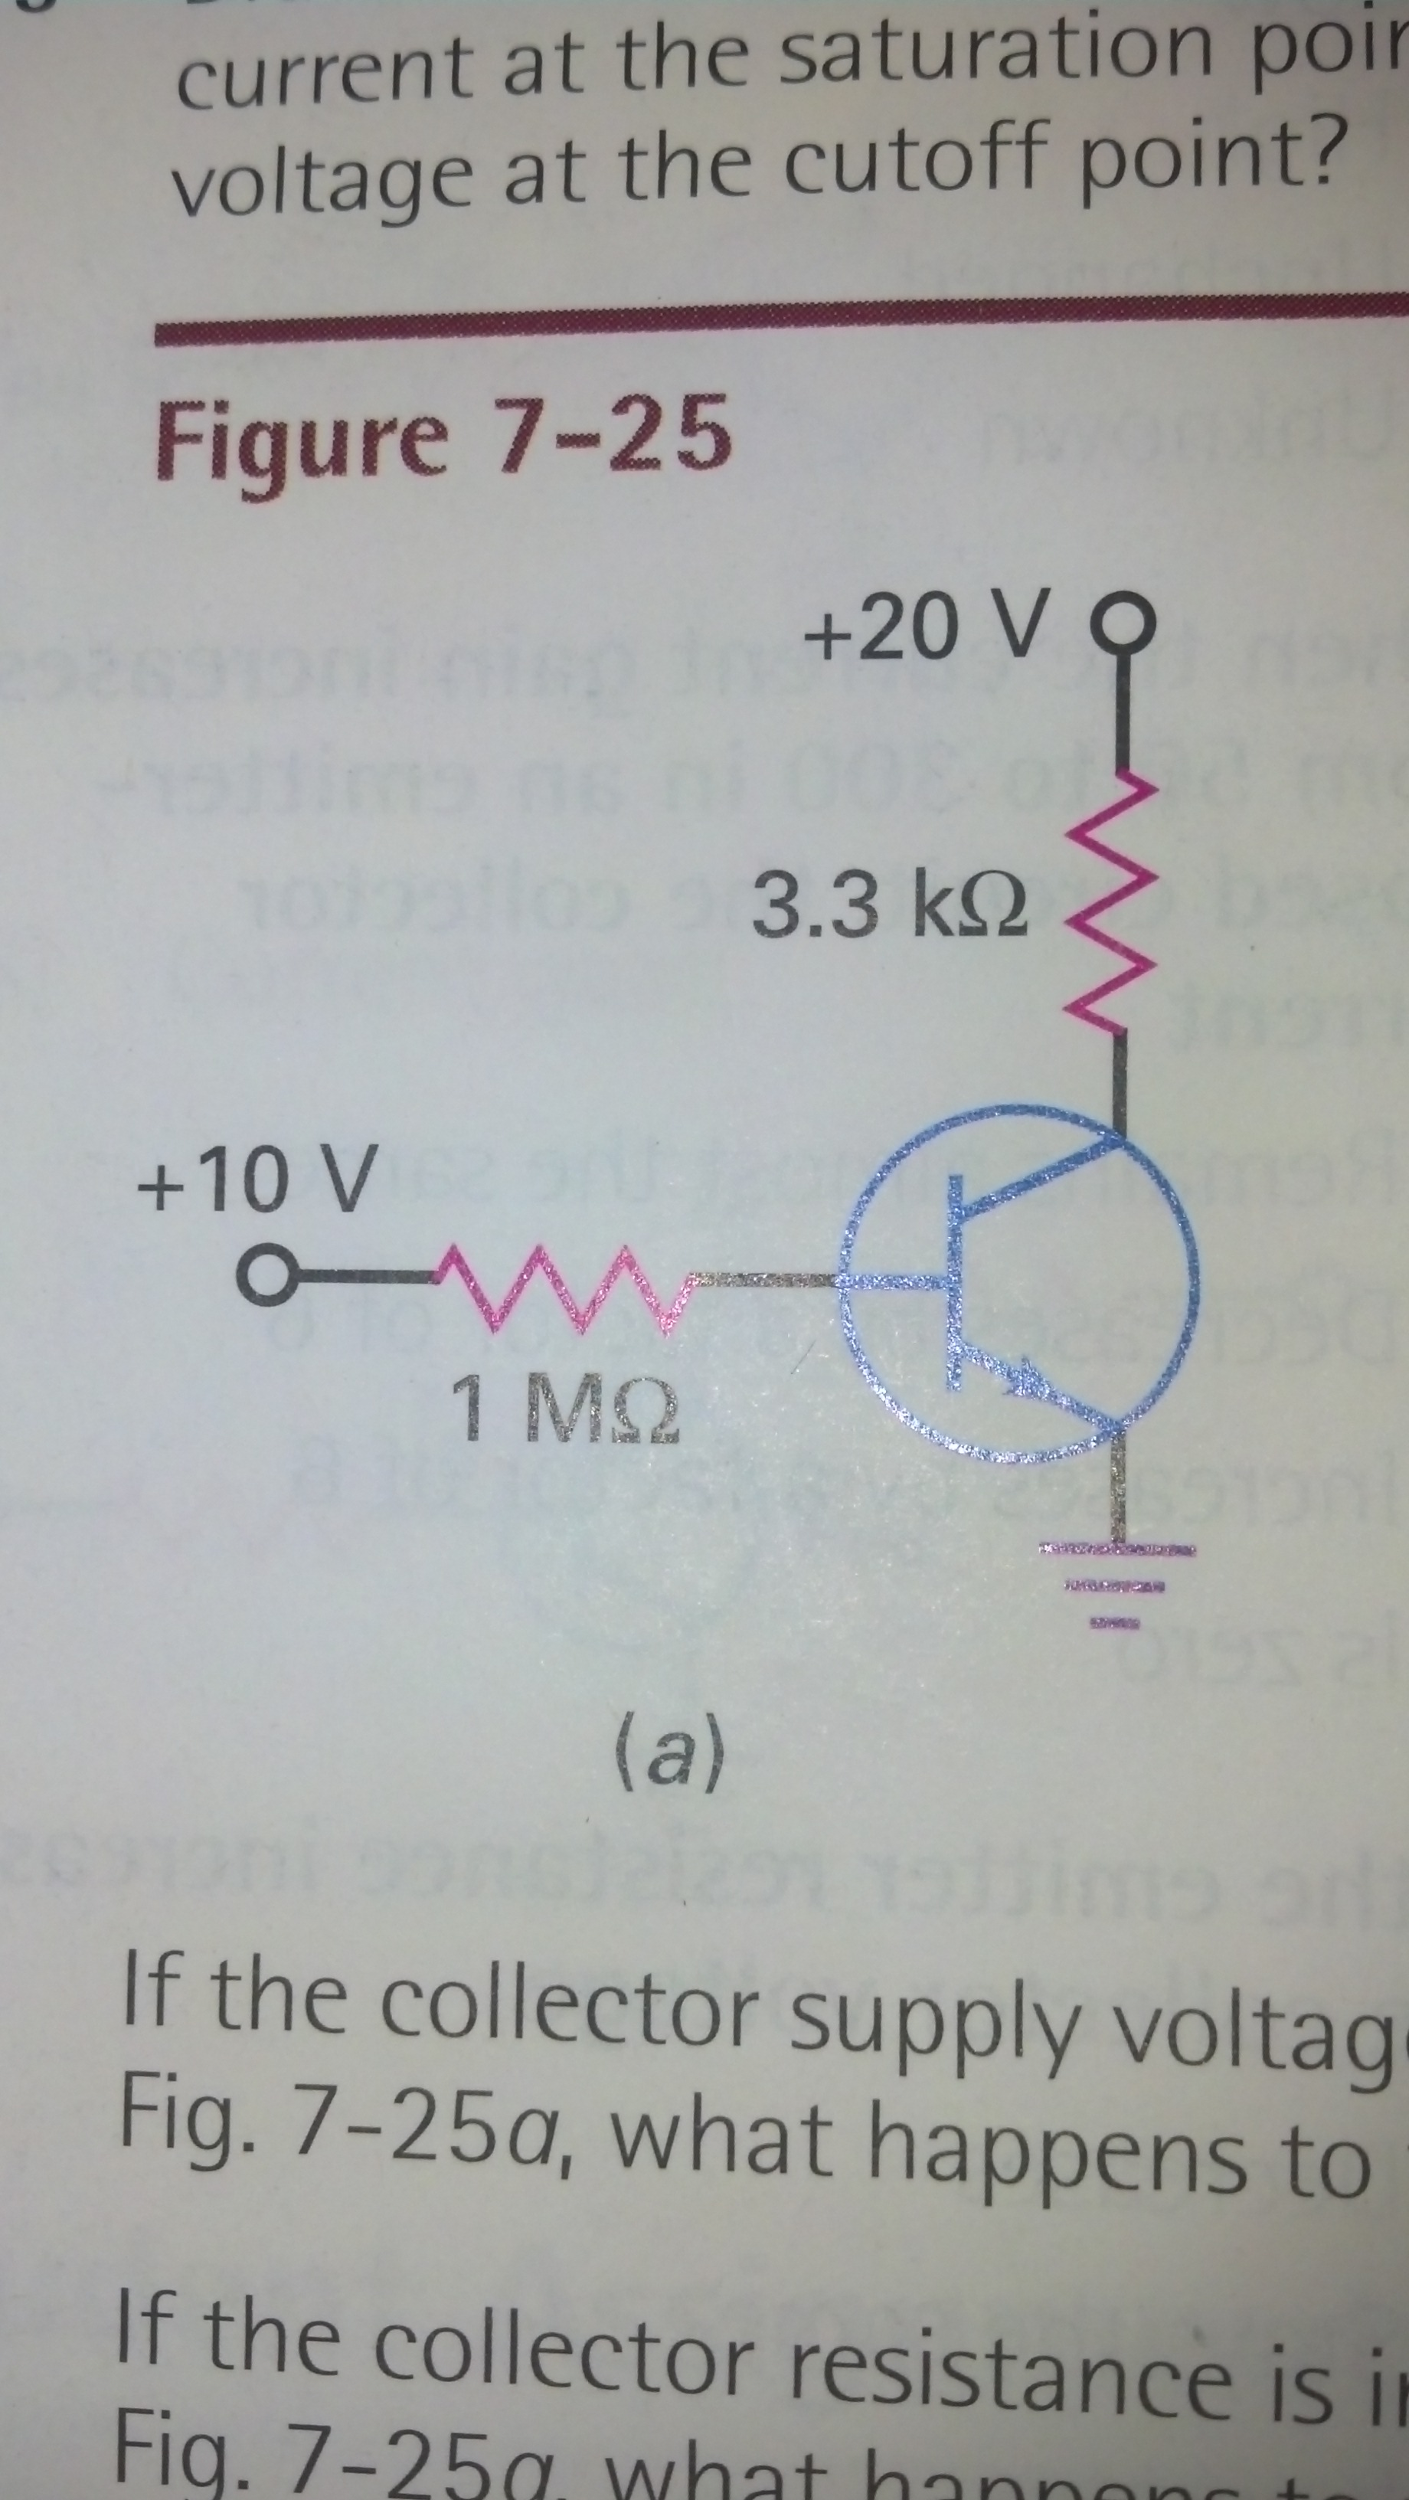 7-10 In fig 7-25a, what is the voltage between the